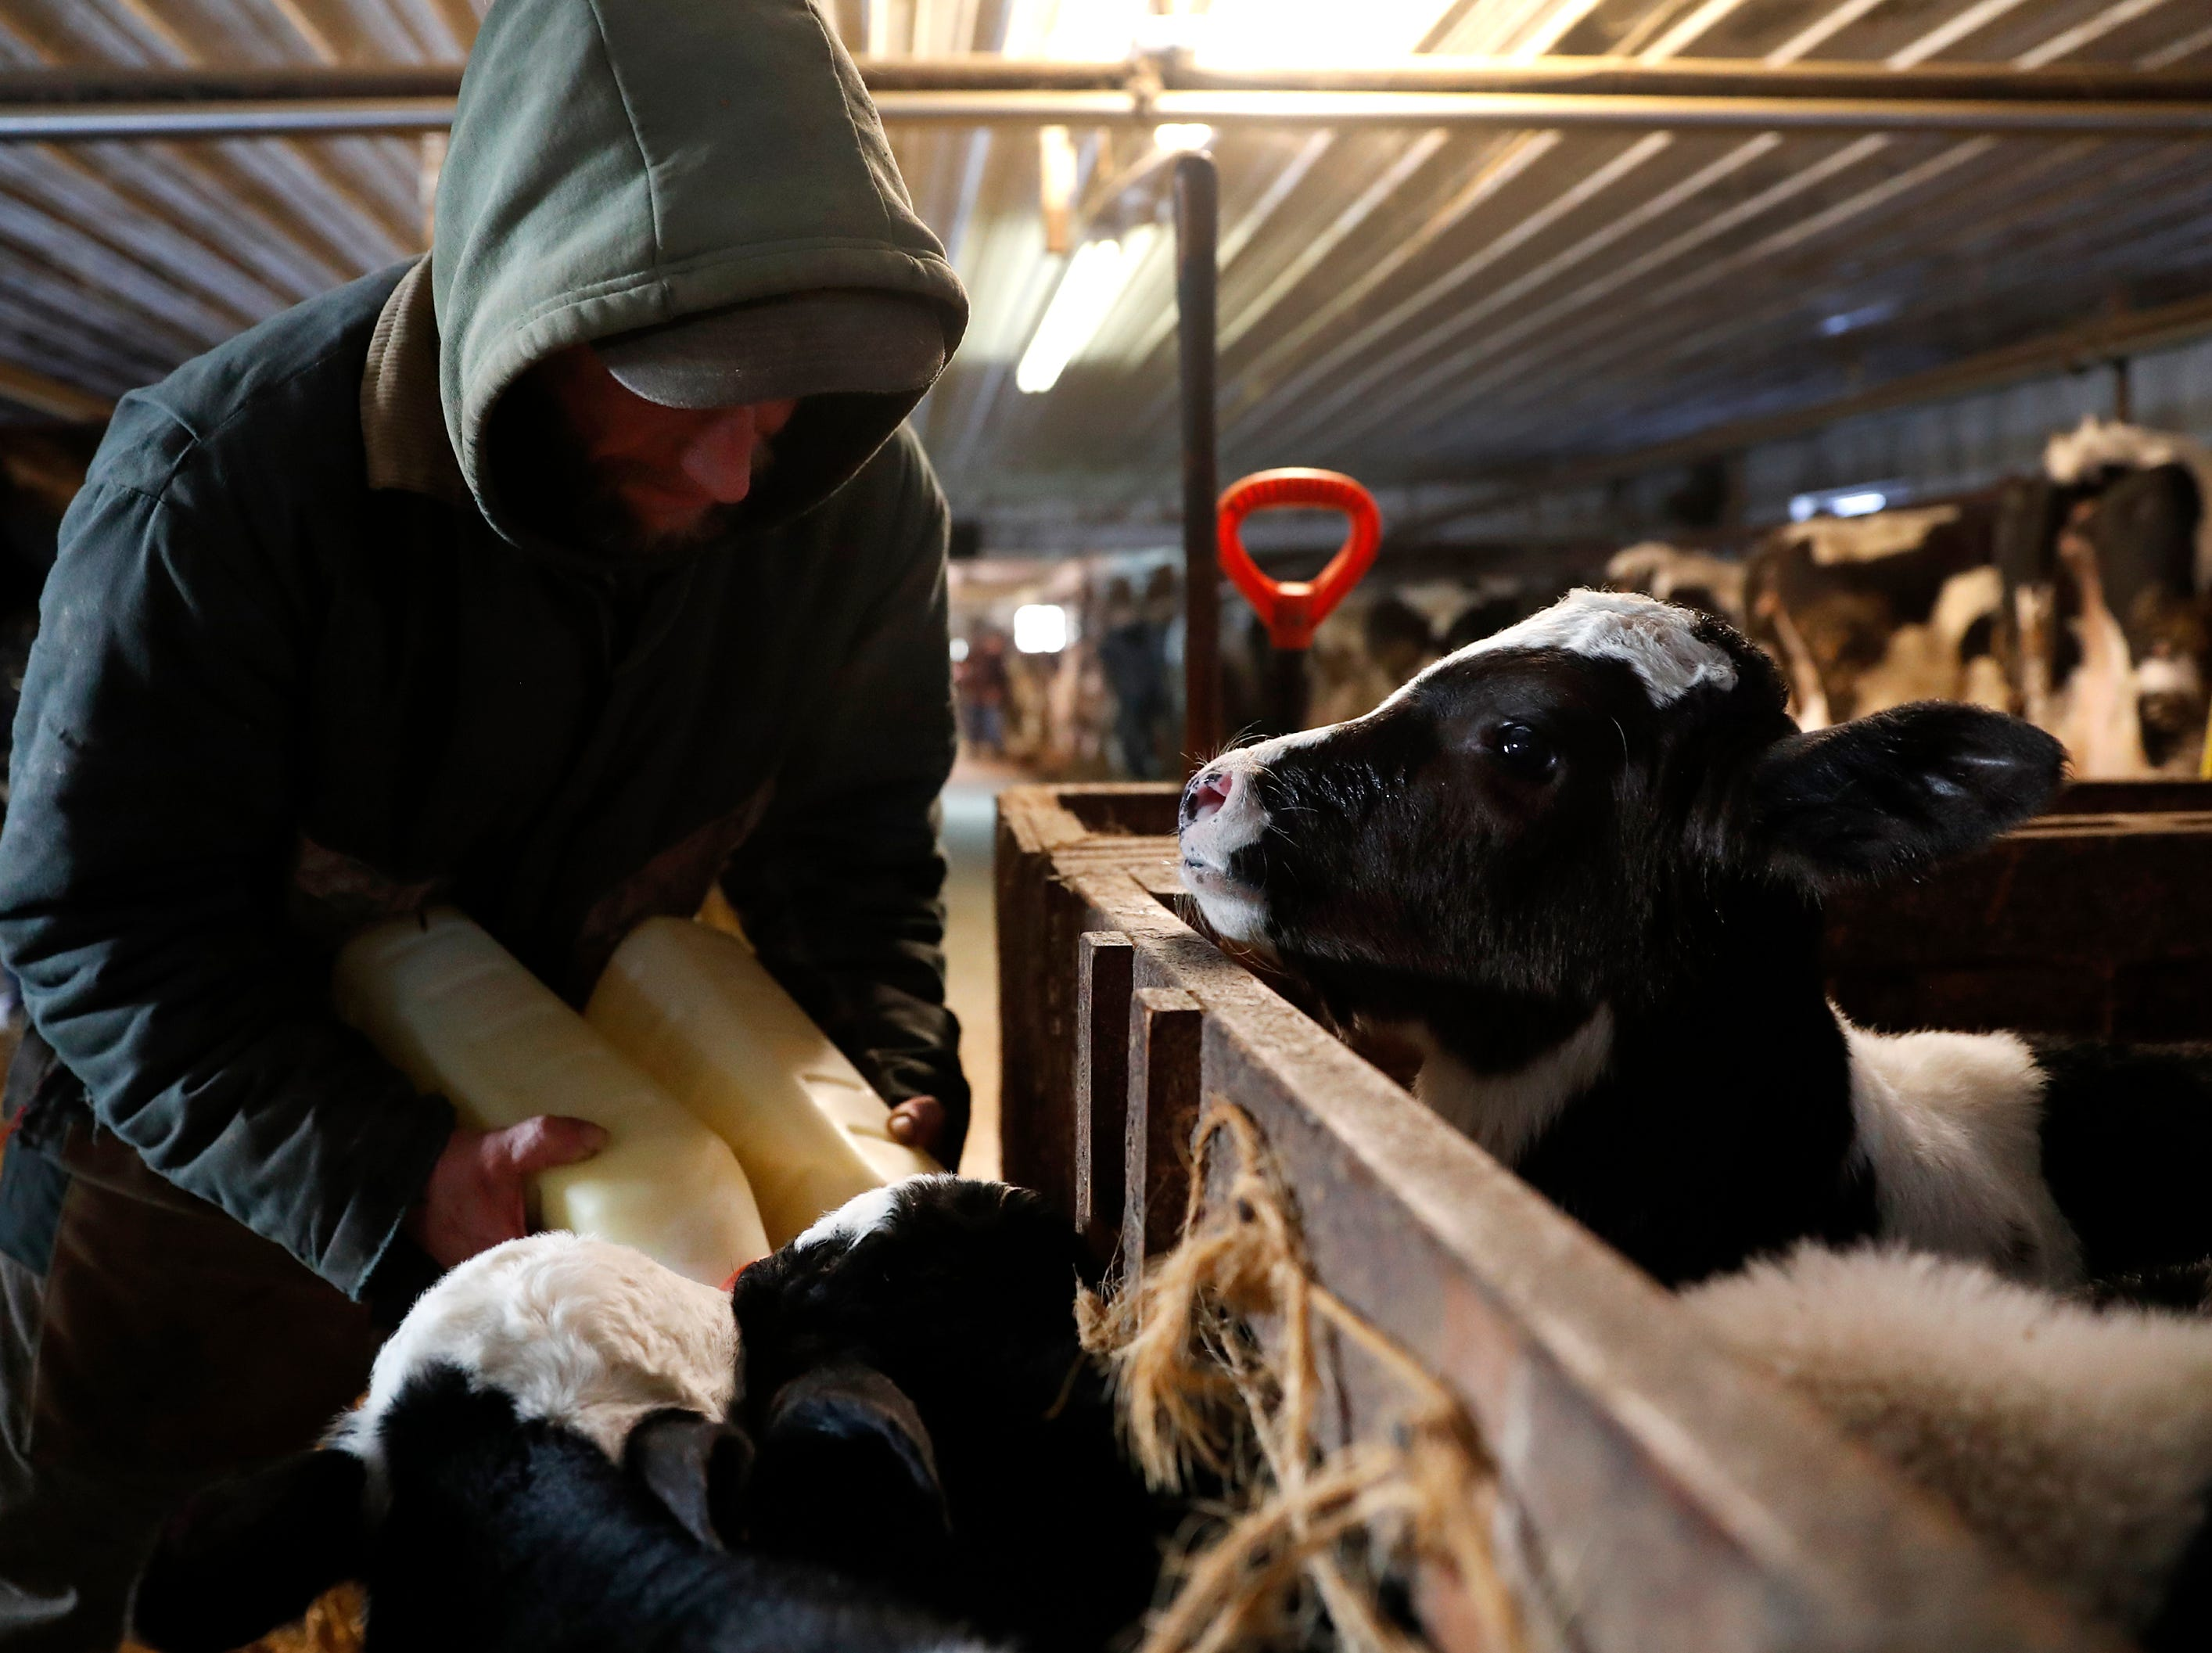 Steve Rieckmann, son of John Rieckmann, feeds calves at his father's dairy farm Wednesday Feb. 13, 2019, in Fremont, Wis.Danny Damiani/USA TODAY NETWORK-Wisconsin